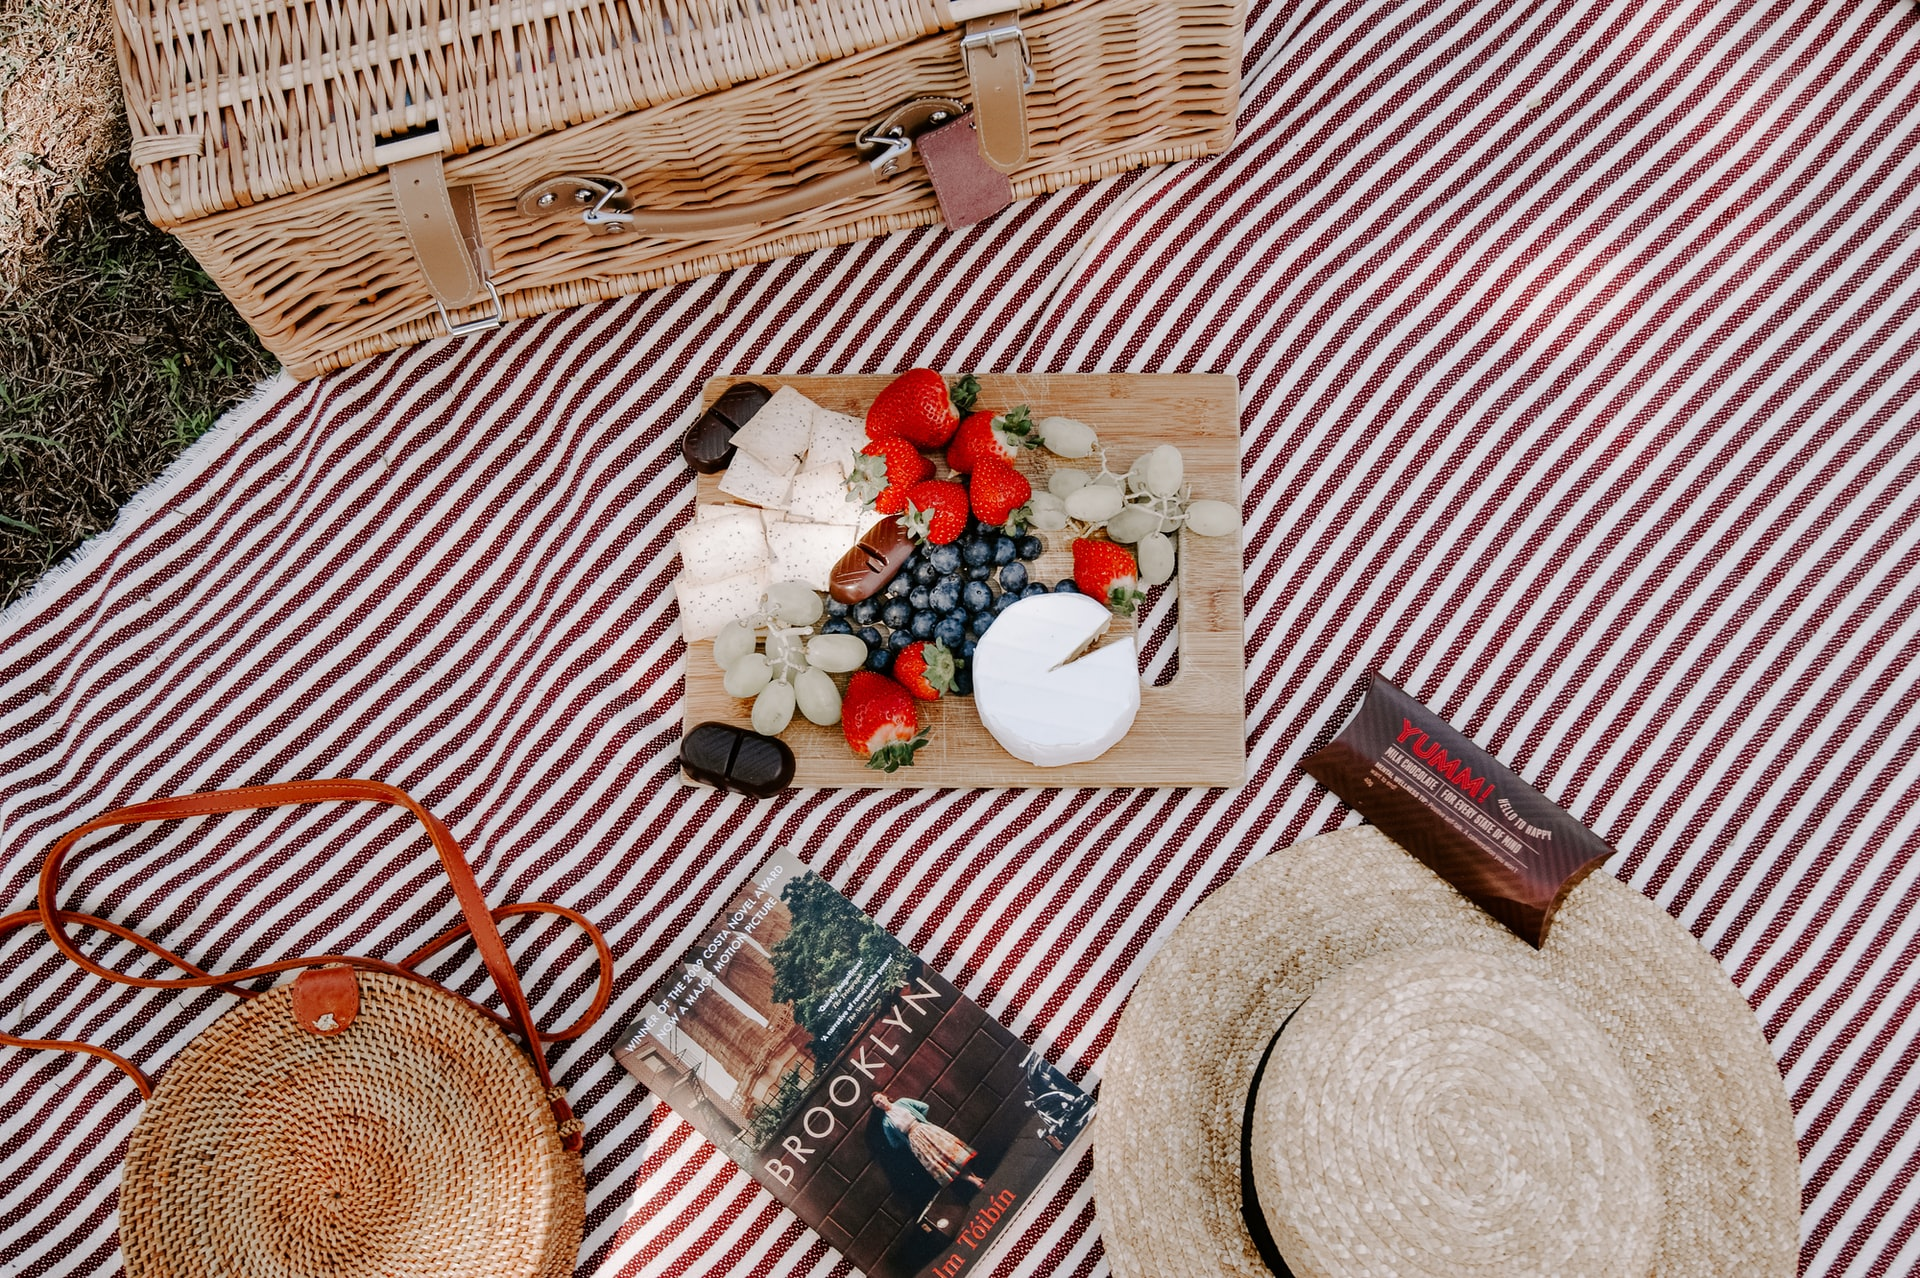 Picnic basket, book, hat and flowers laid out on a red and white cloth